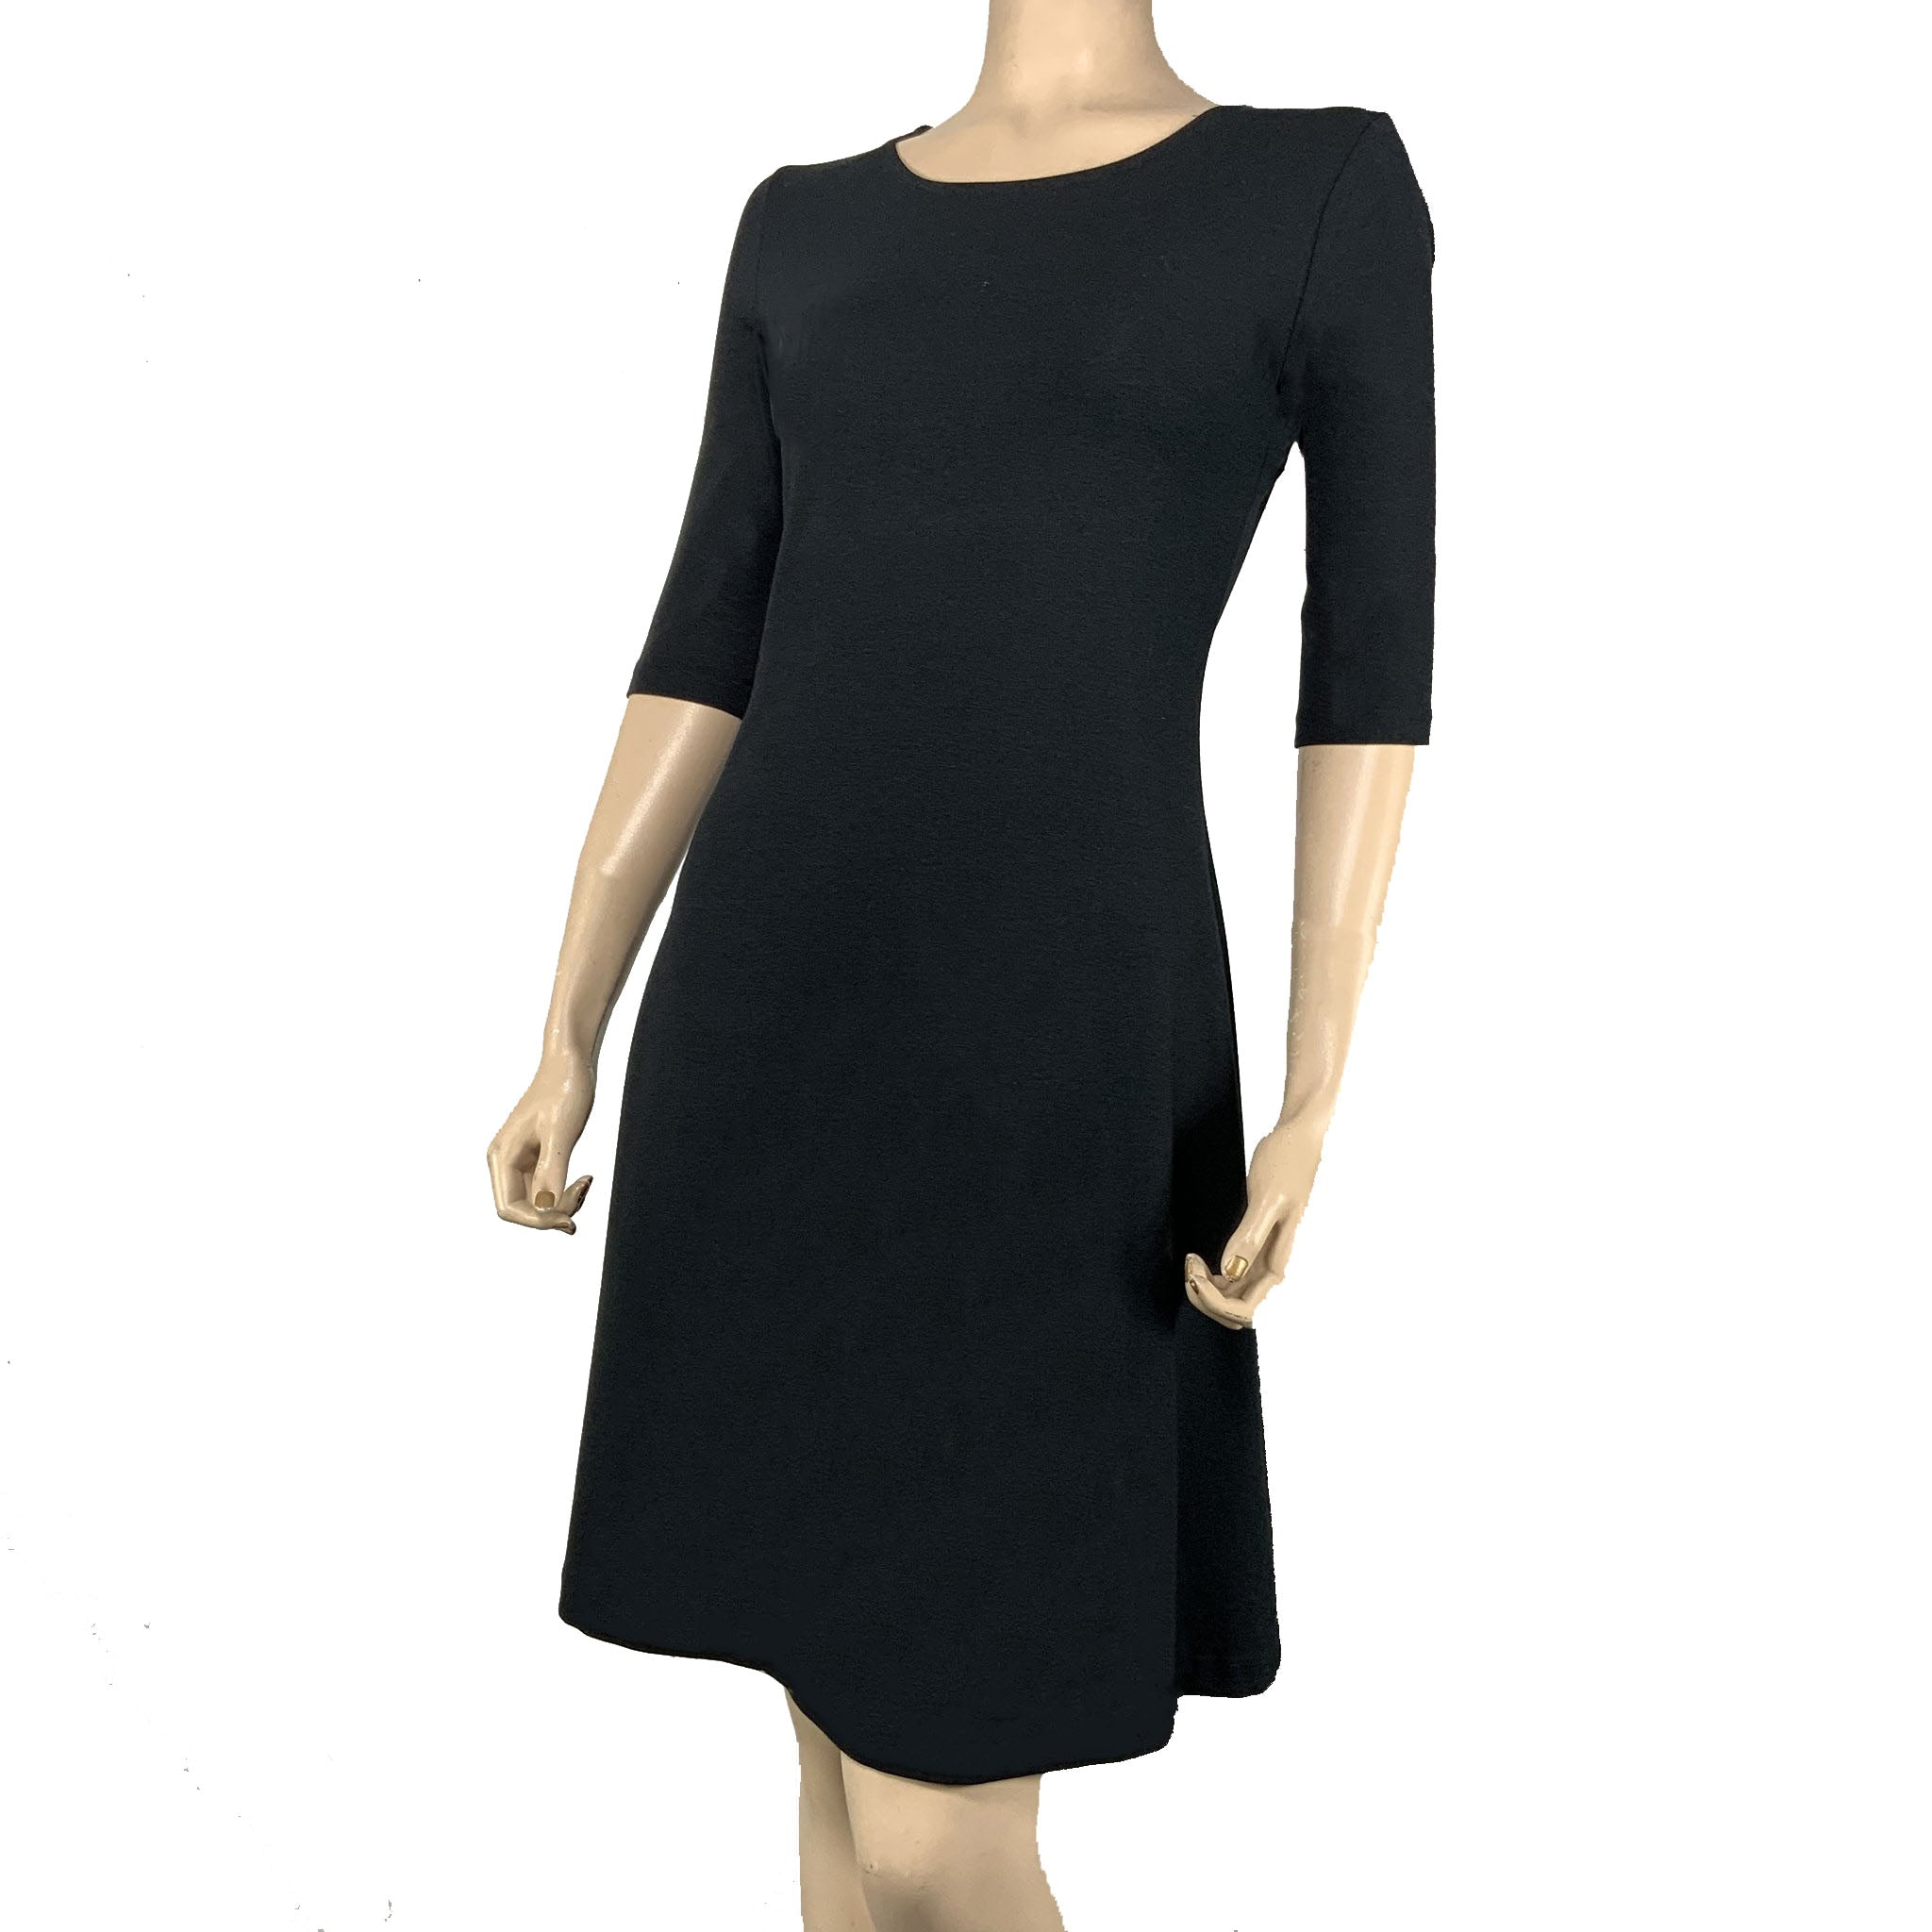 Solid Black Lucia Cotton Bamboo Dress